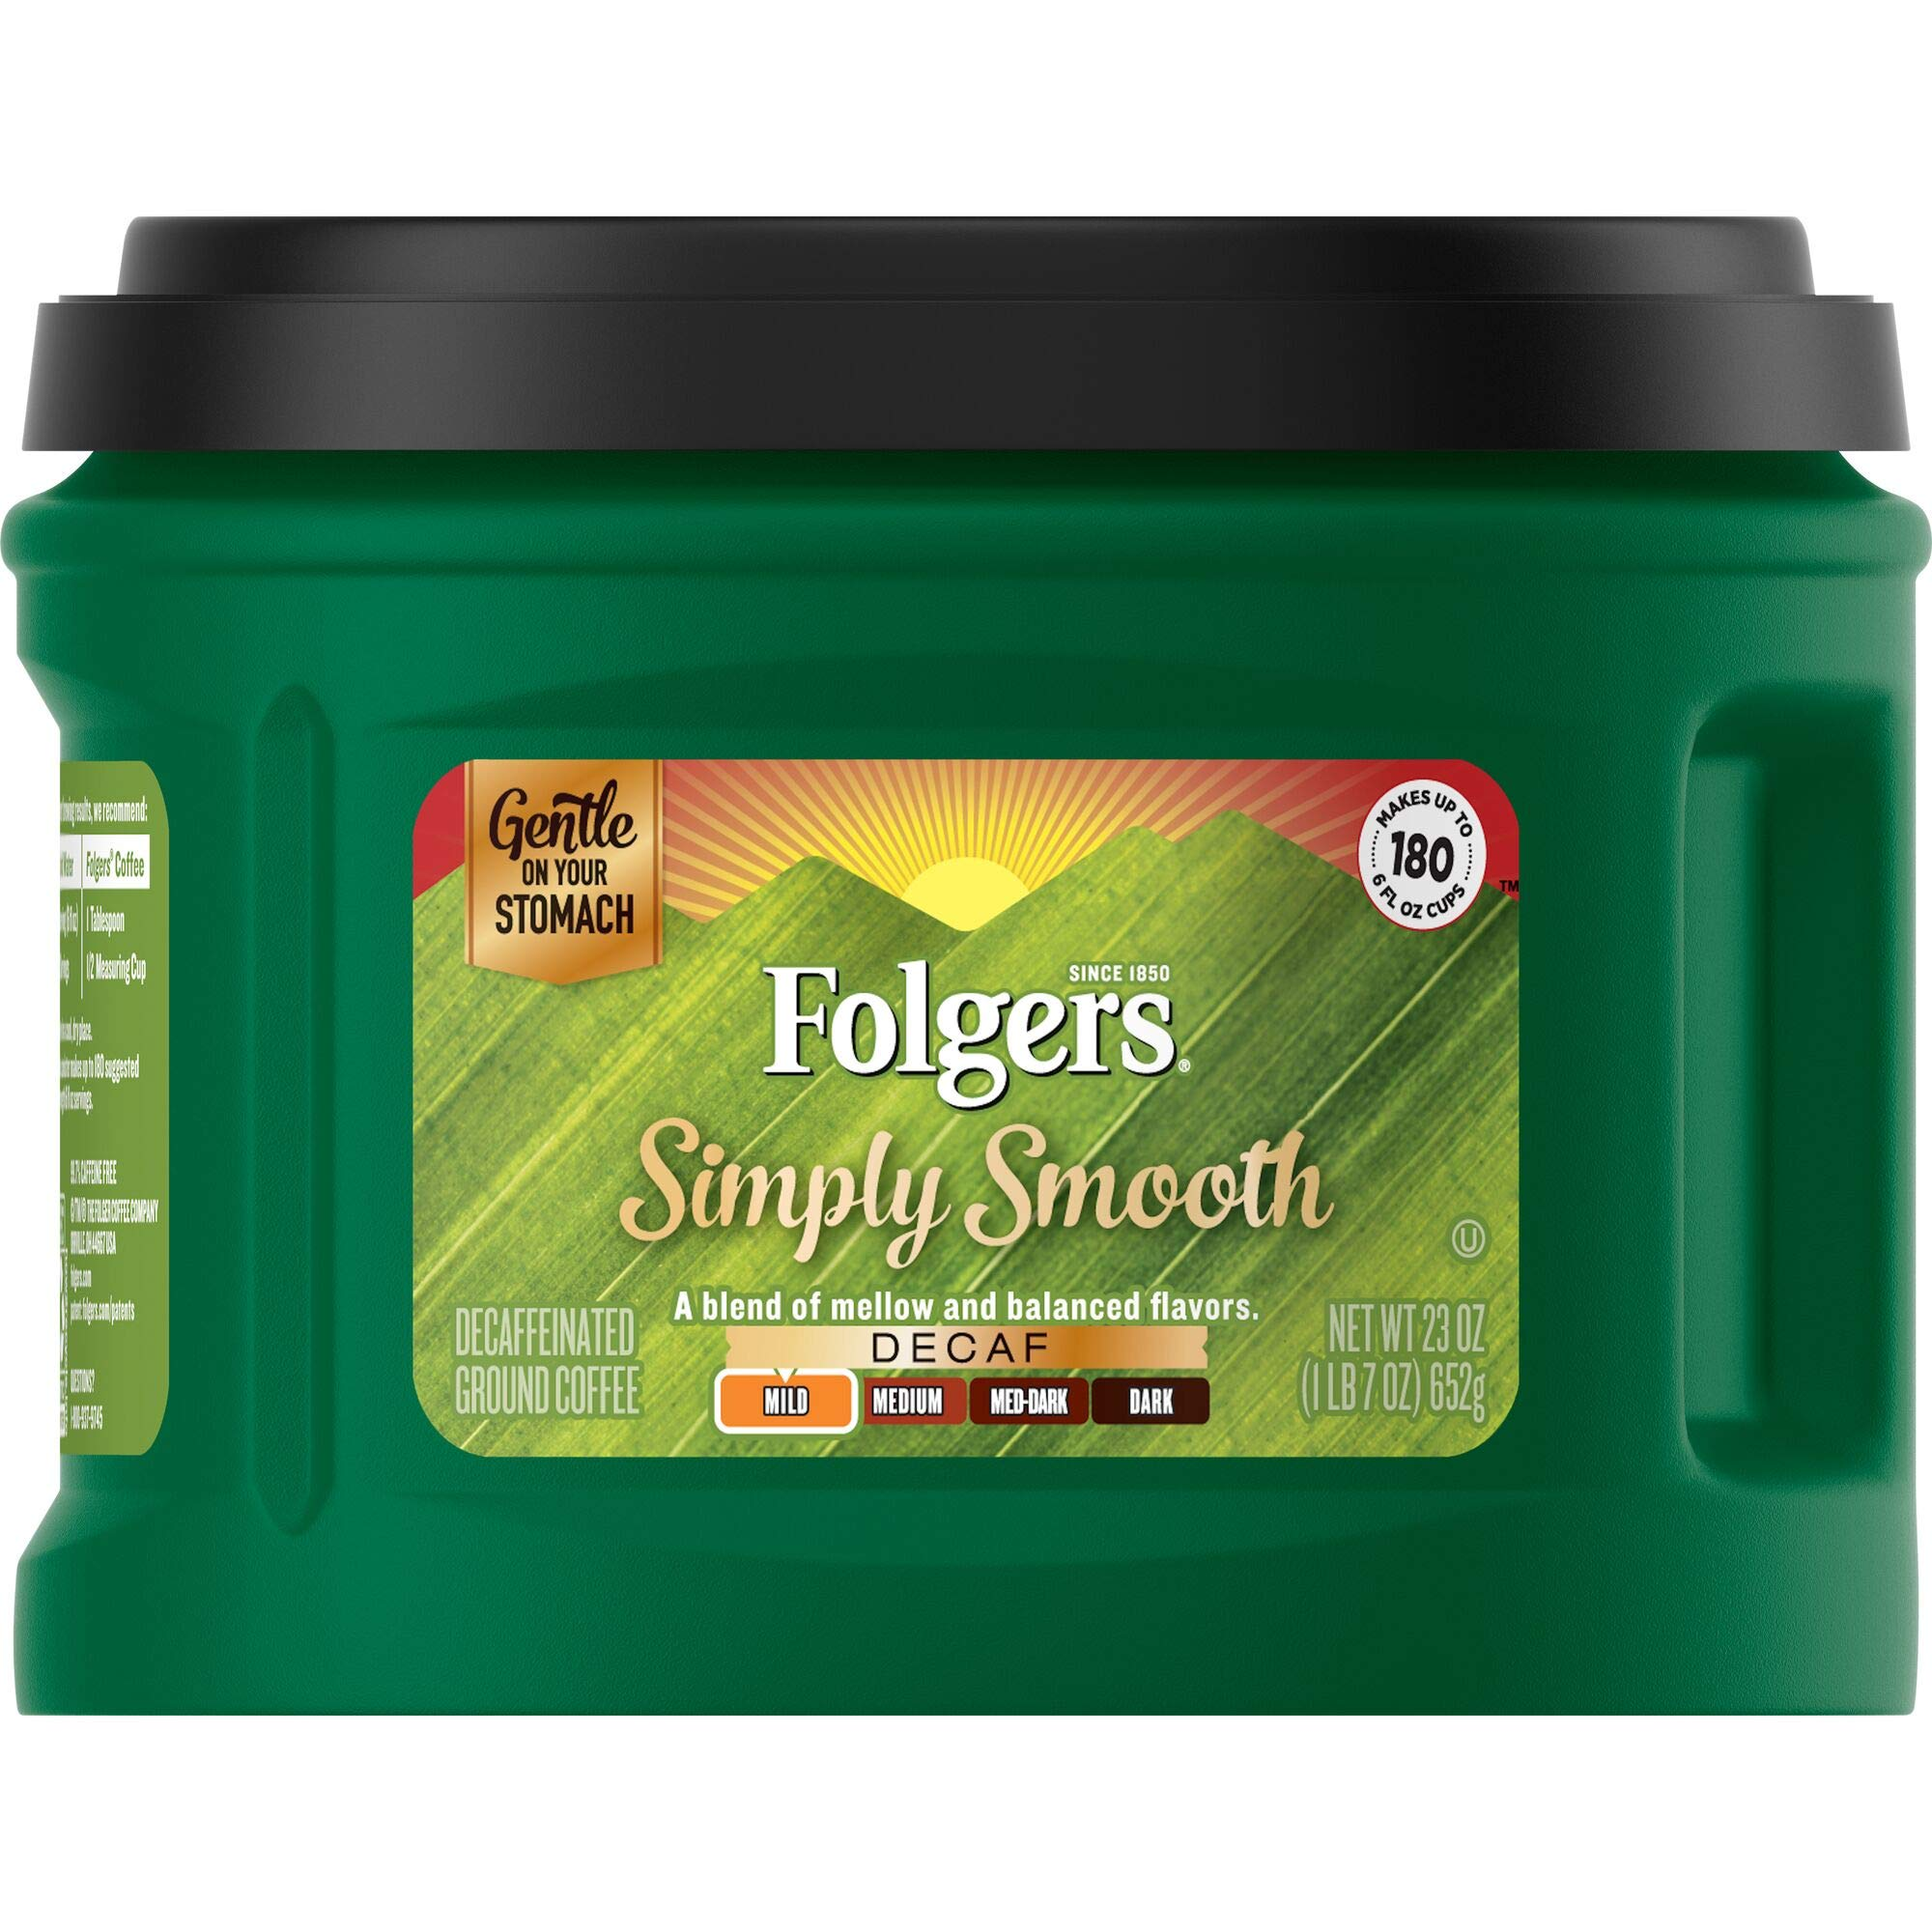 Folgers Simply Smooth Decaf Ground Coffee, Medium Roast, 23 Ounce (Pack of 6), Packaging May Vary